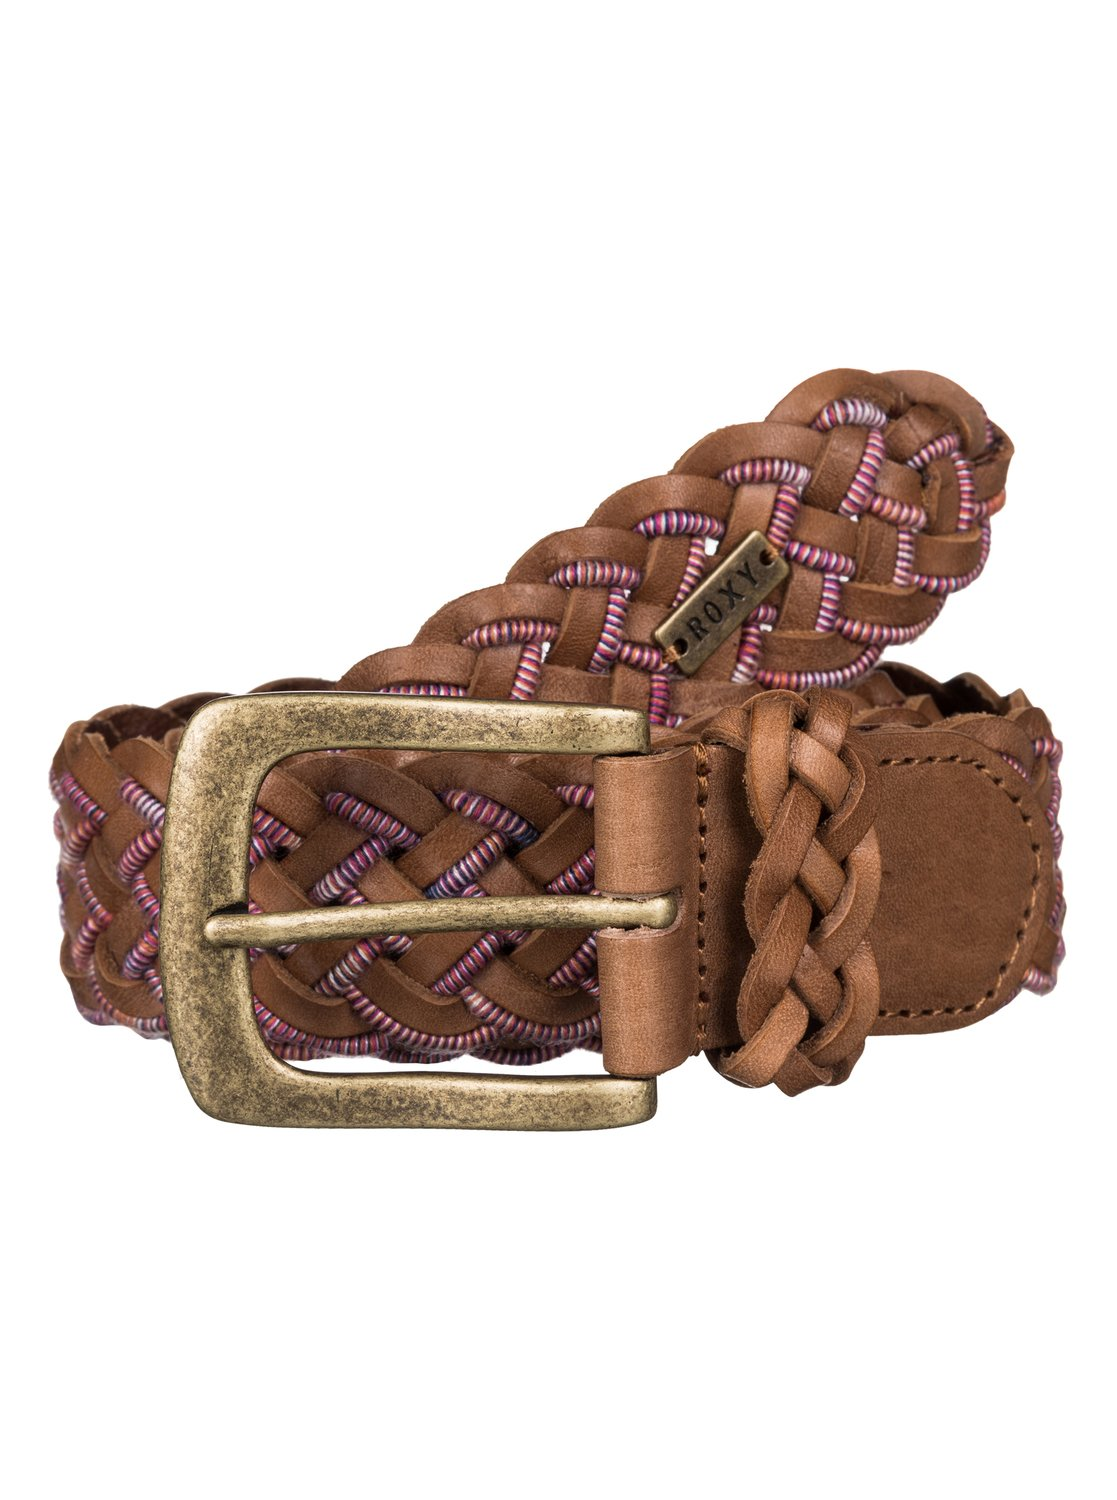 Женский ремень Mily Roxy Women's Mily Belt